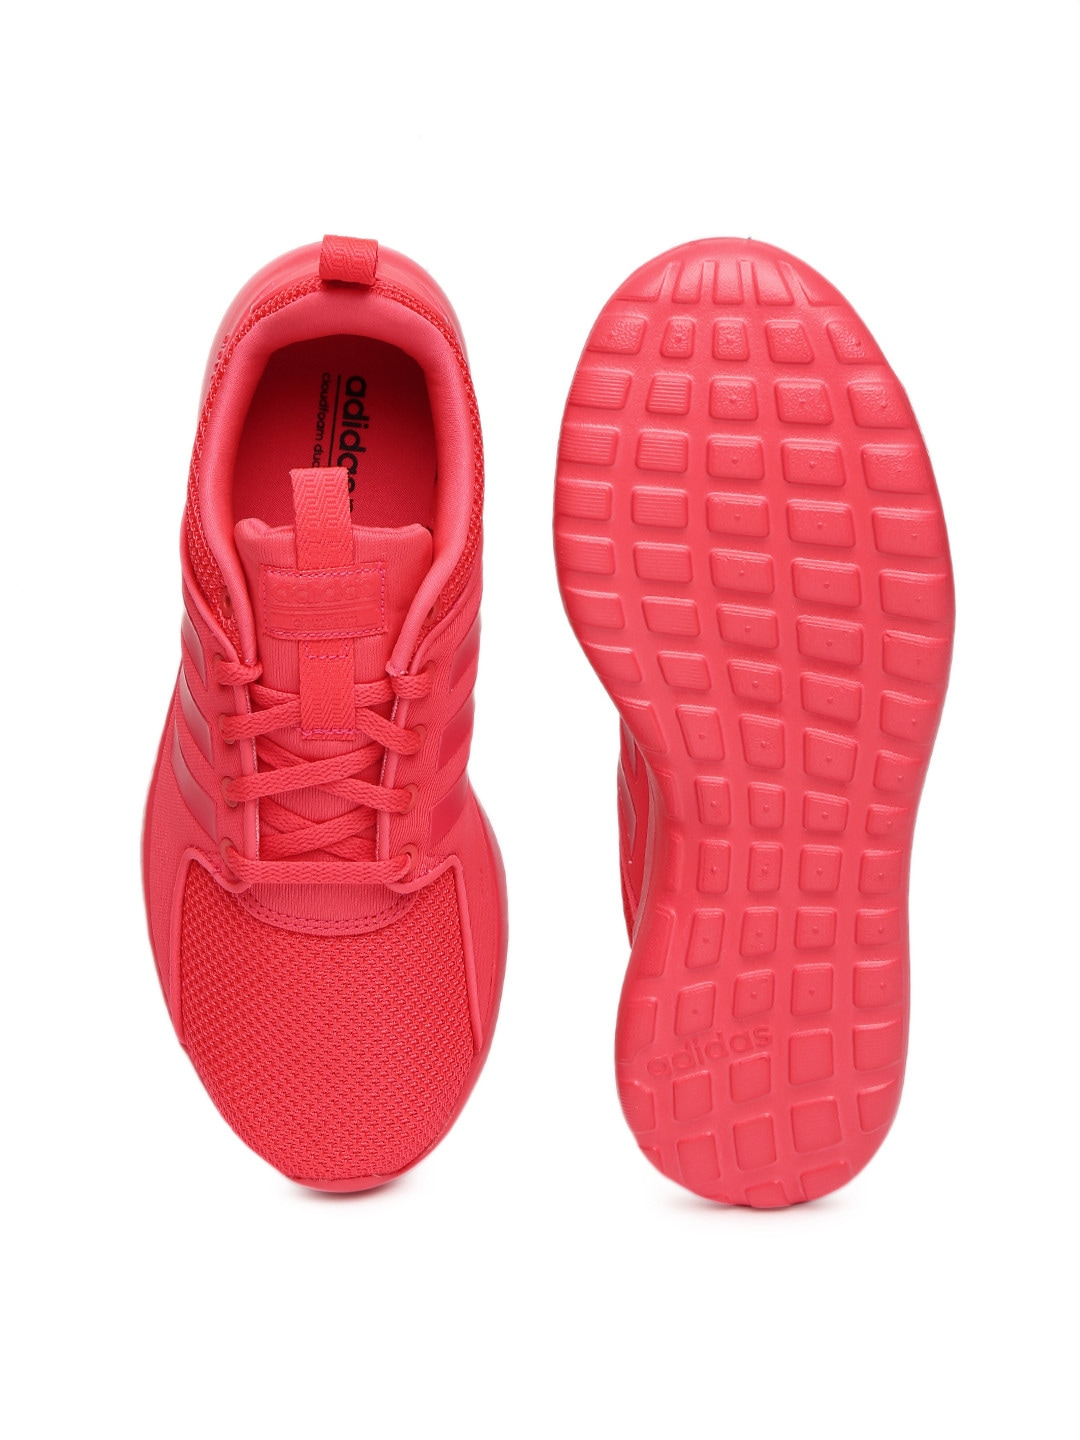 Buy adidas neo neon,up to 37% Discounts